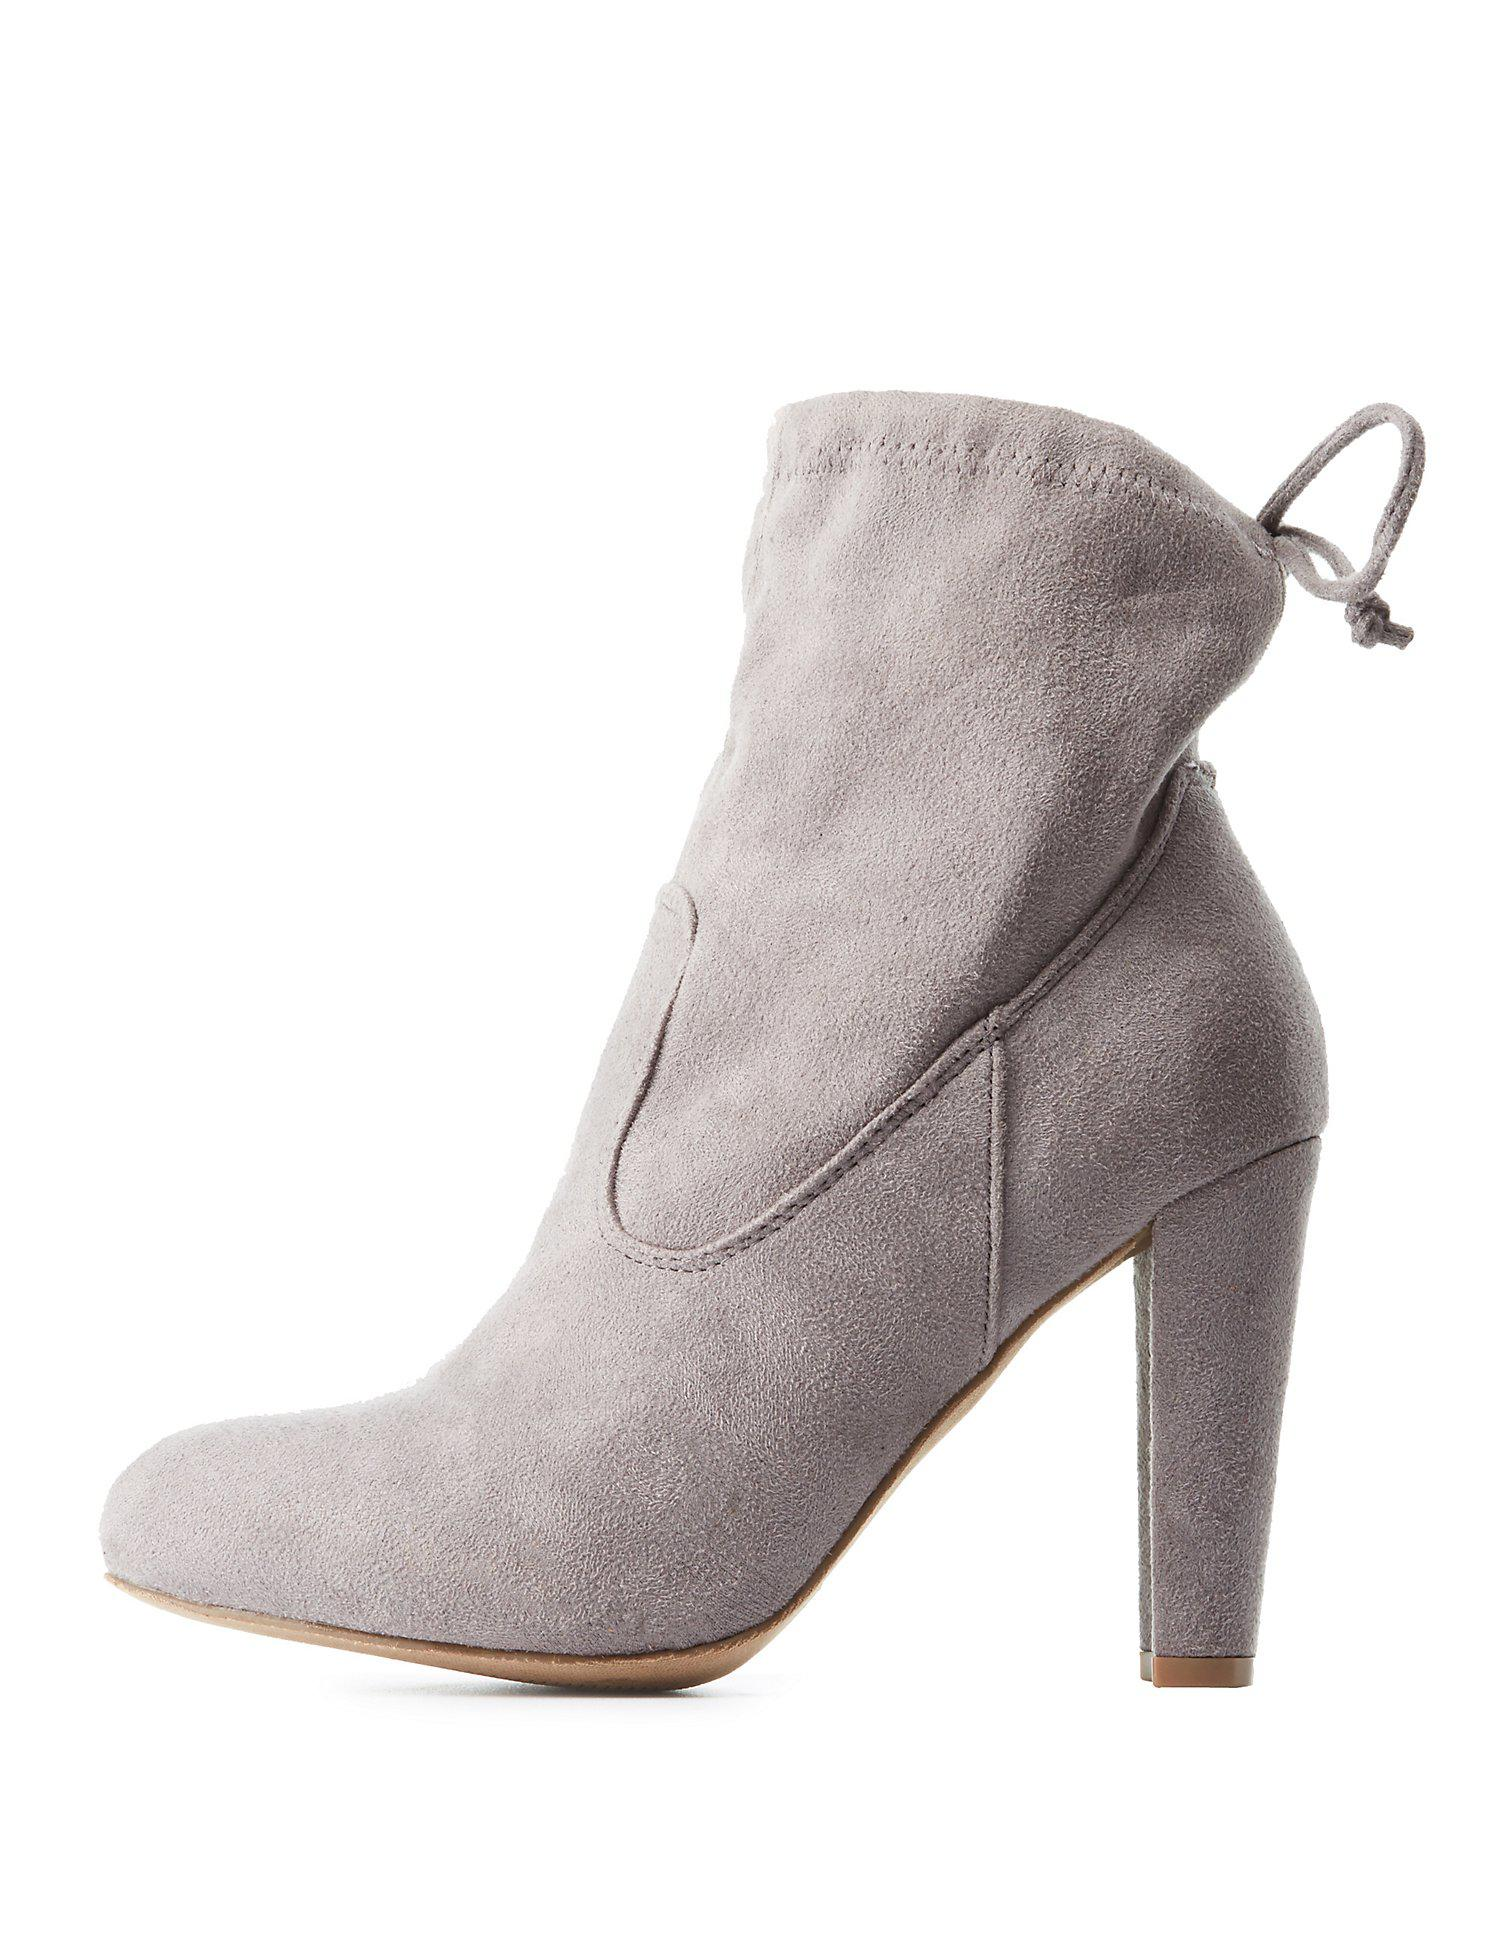 360d5f3dfd8b Lyst - Charlotte Russe Tie-back Ankle Booties in Gray